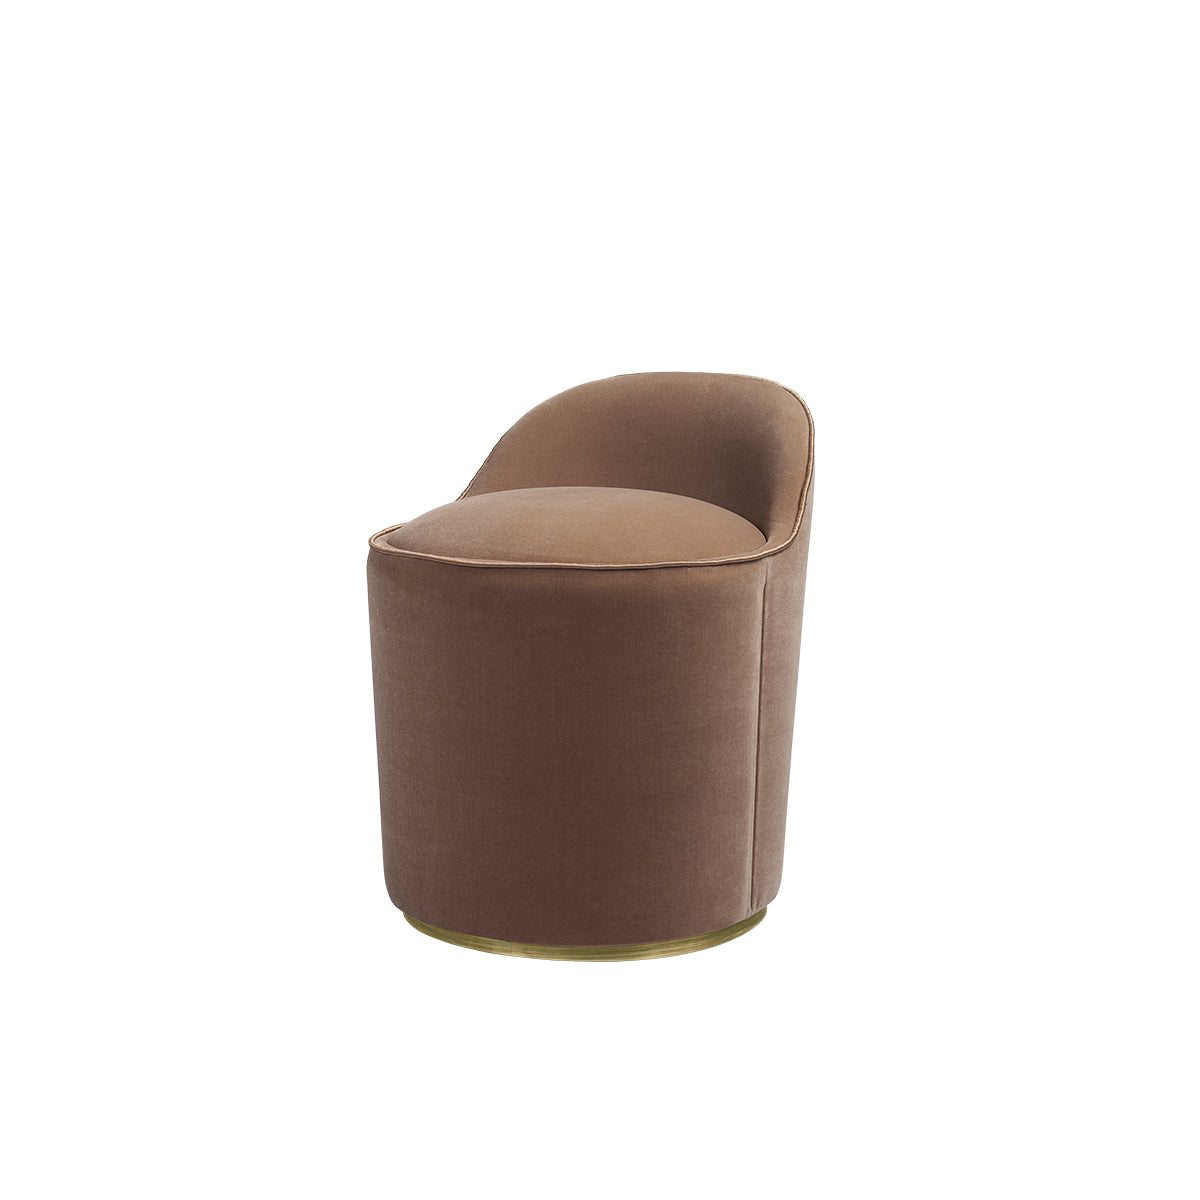 TAIL LOUNGE CHAIR - LOW, Chairs//Fauteuils, Gubi  - SORS